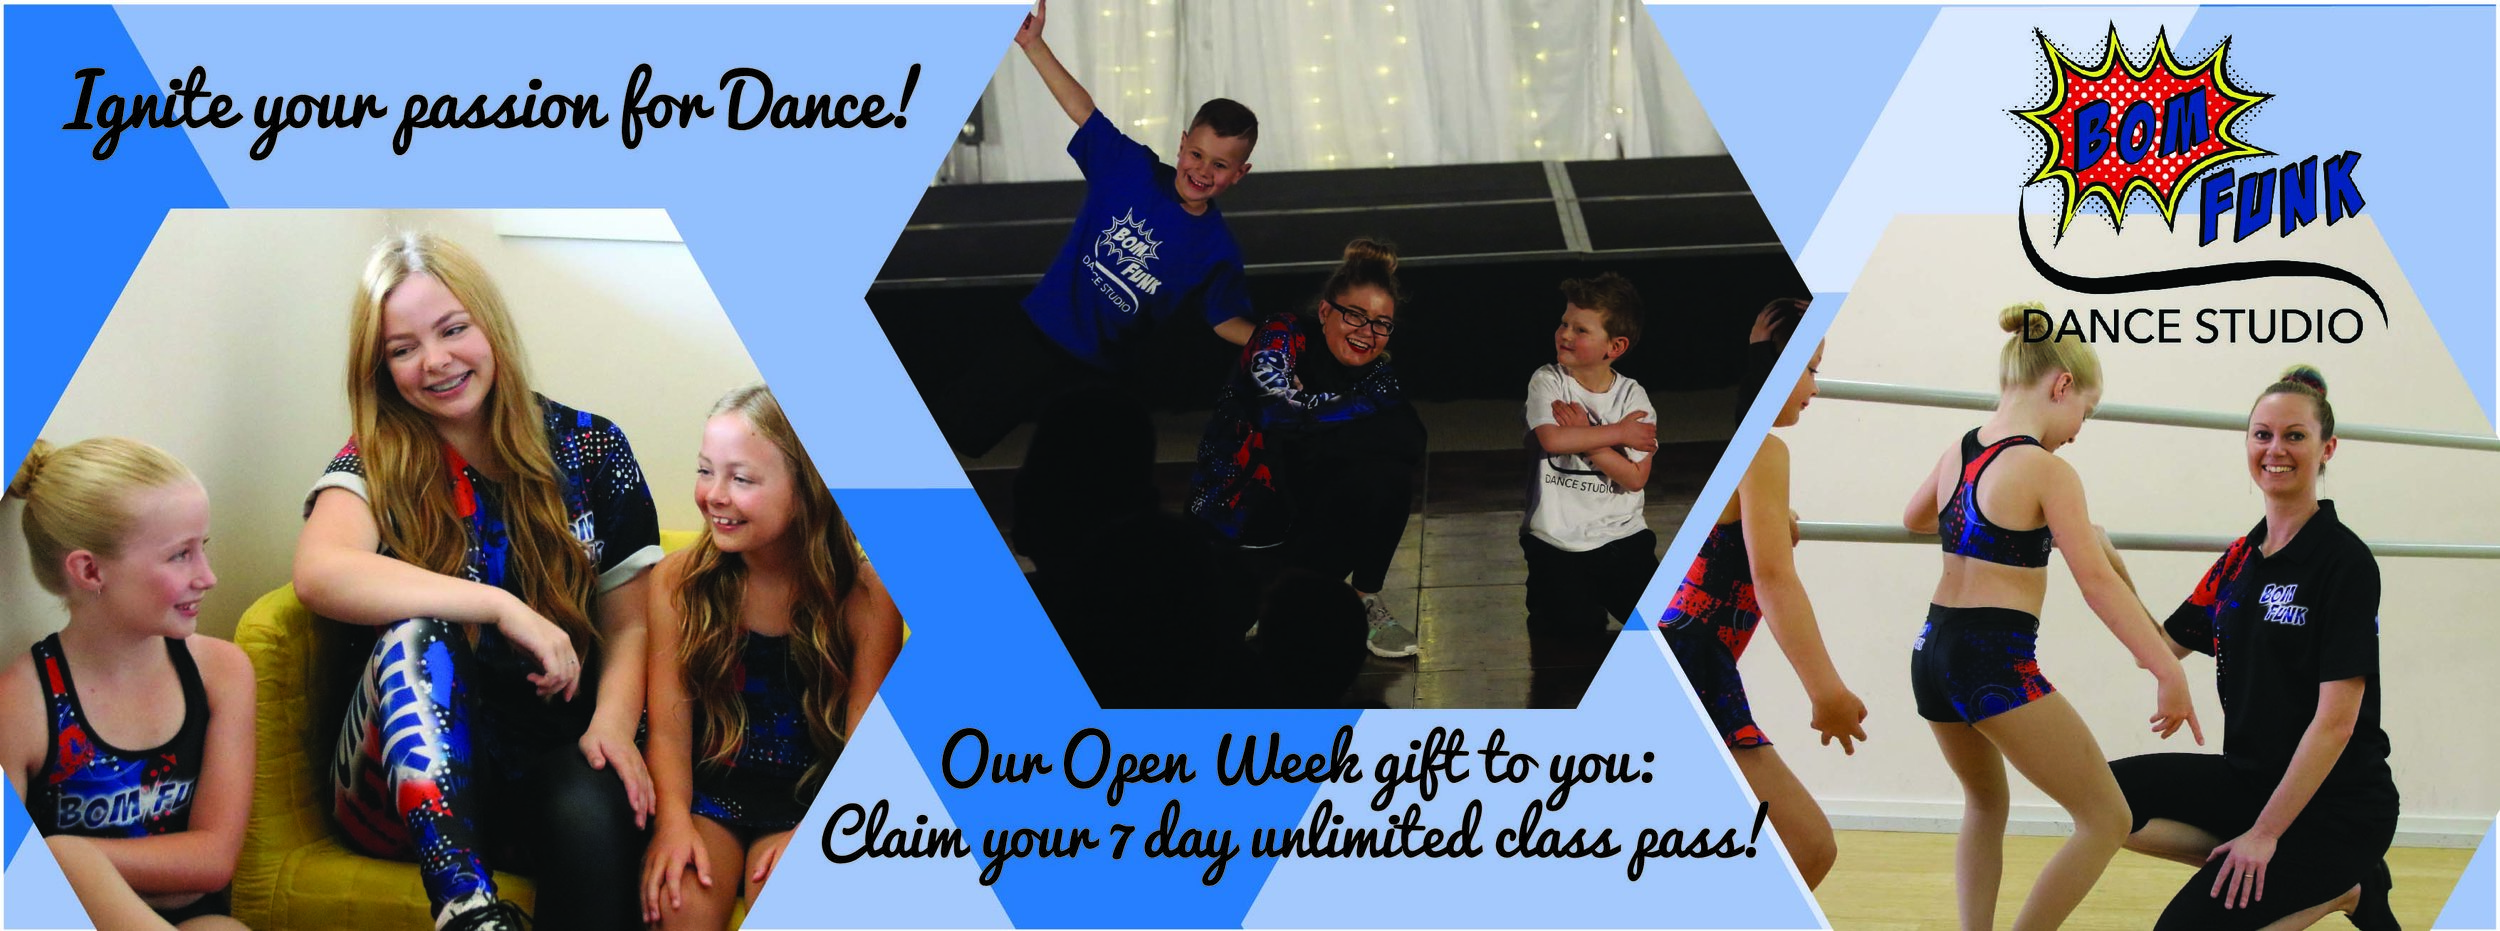 OUR NEXT OPEN WEEK with FREE UNLIMITED TRIAL CLASSES:  Monday 25th Nov - Friday 29yh Nov 2019 (Week 7, Term 4)  Please note that no Trial classes are available for Junior level classes or Tots classes on the Saturday due to our Tots & Junior Showcase preparations.    2019 TIMETABLE    What Age group should I choose?  ~We recommend selecting the age group that your child is turning in the calendar year. Children with very late birthdays (Oct, Nov, Dec) may be better to start first semester in one level and move to the next level for the second Semester. If you are unsure, please  contact us  and we'd be happy to advise you further.